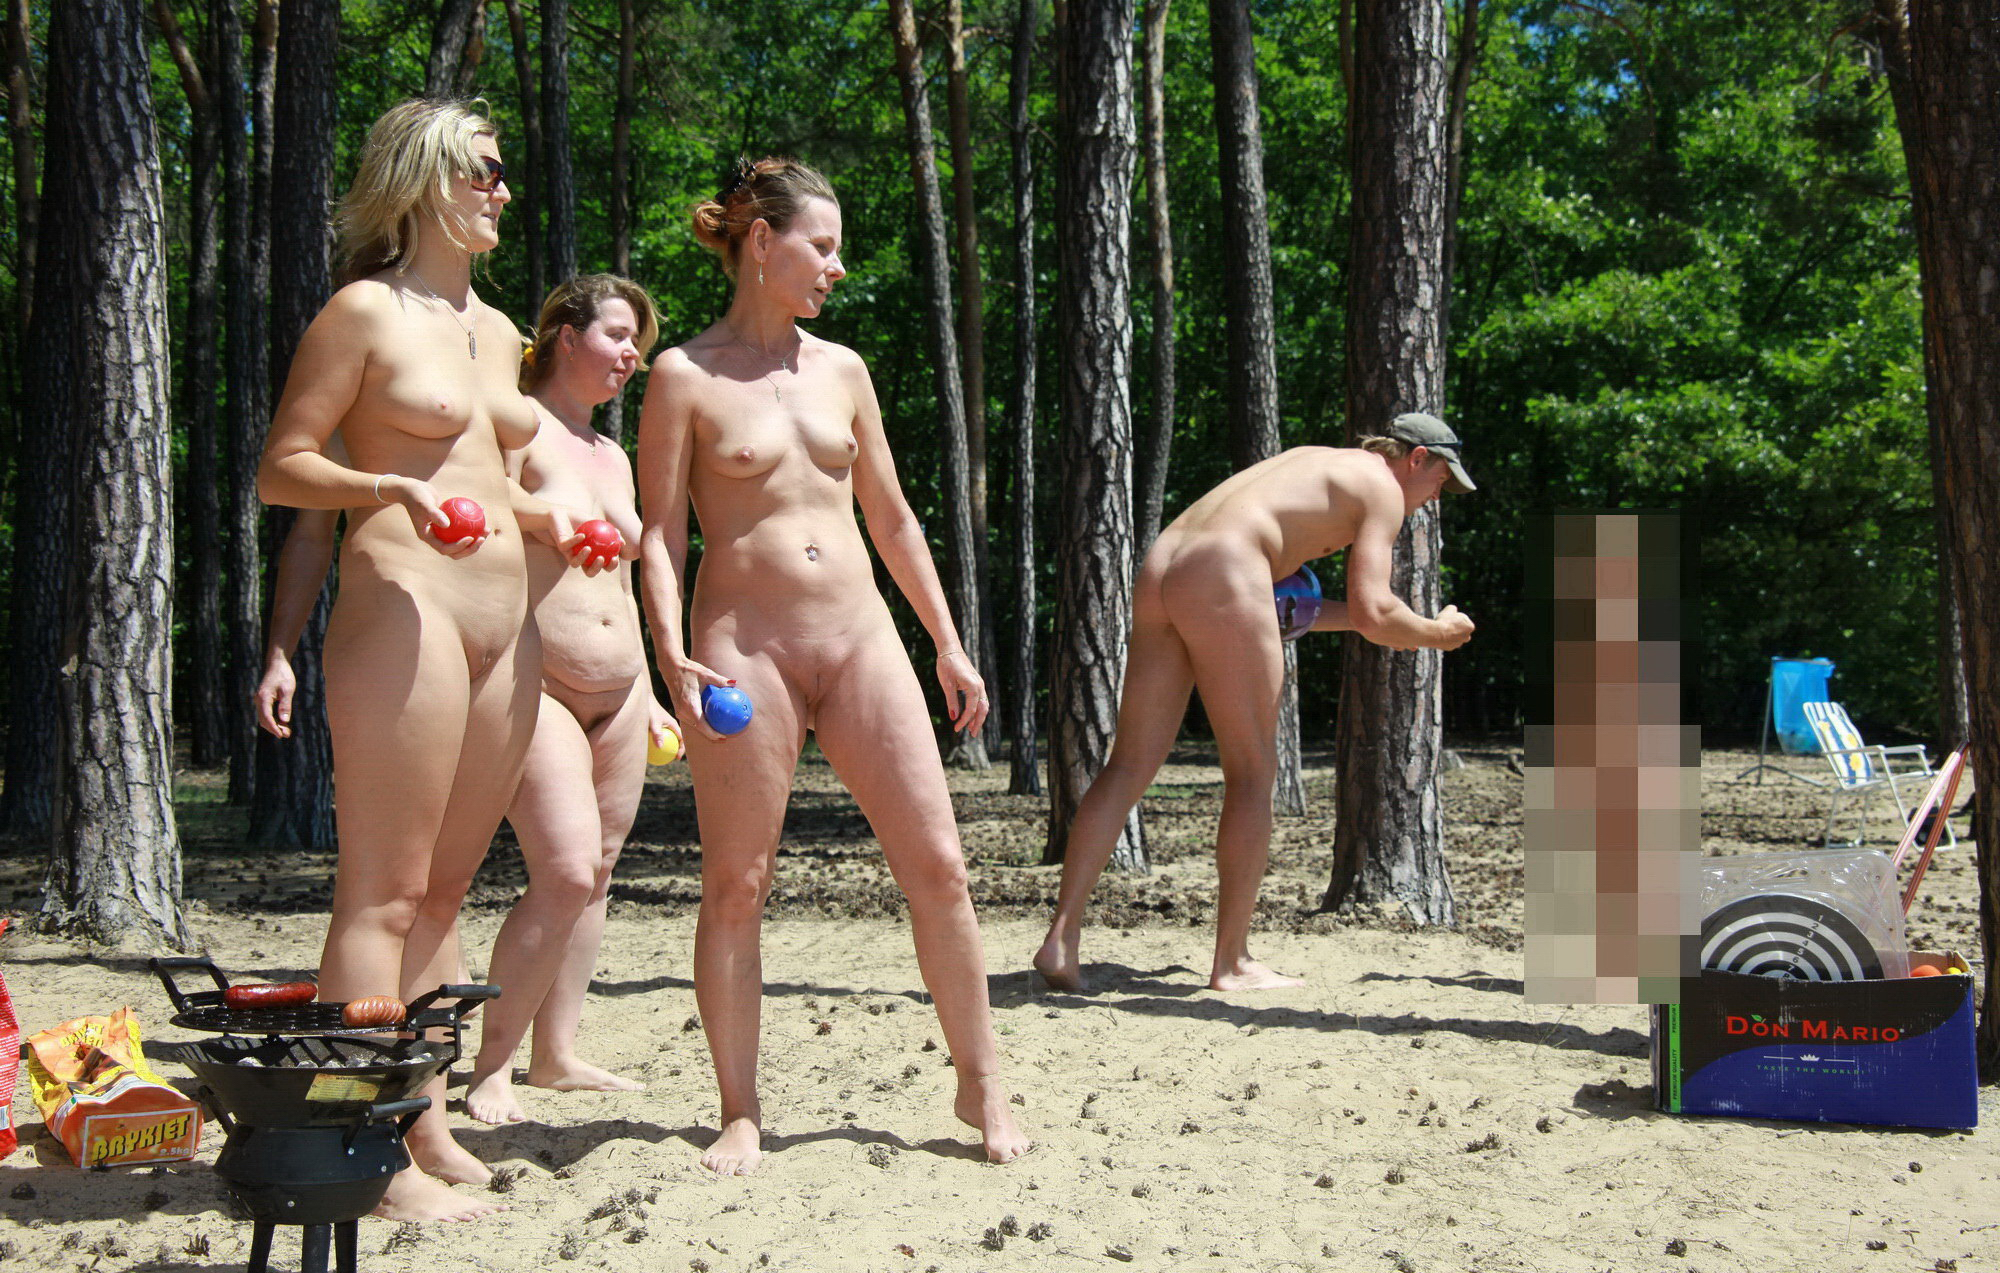 Amusing youtube nude beach sex similar. Bravo